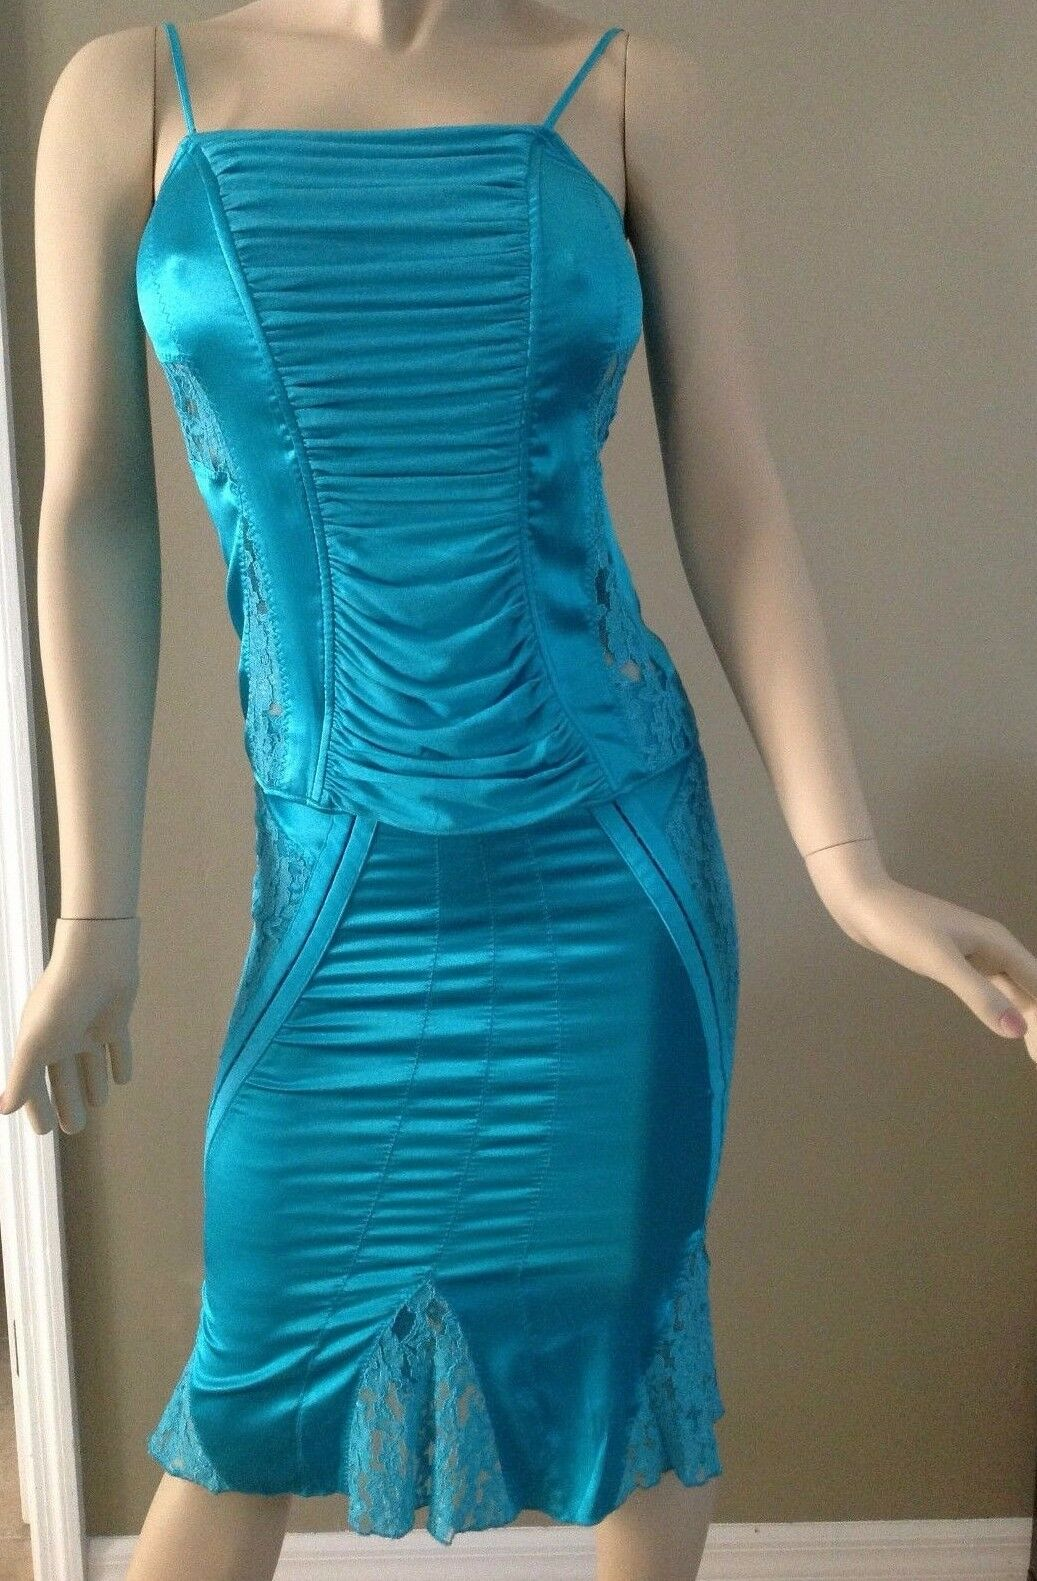 Marciano  Turquoise Silk & Lace Floral Corset Top Size M & Skirt Size 0